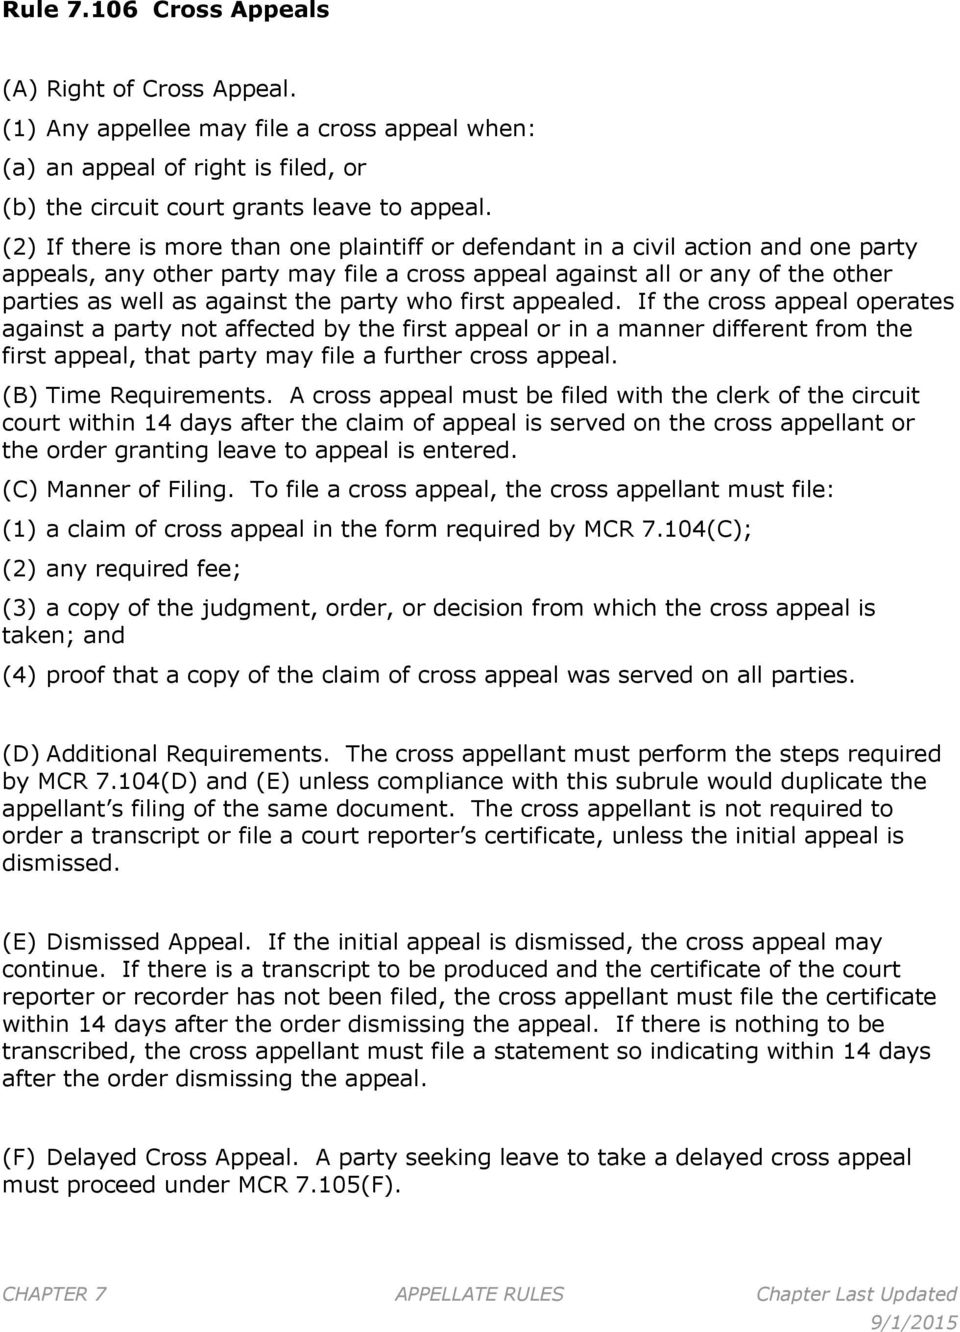 party who first appealed. If the cross appeal operates against a party not affected by the first appeal or in a manner different from the first appeal, that party may file a further cross appeal.